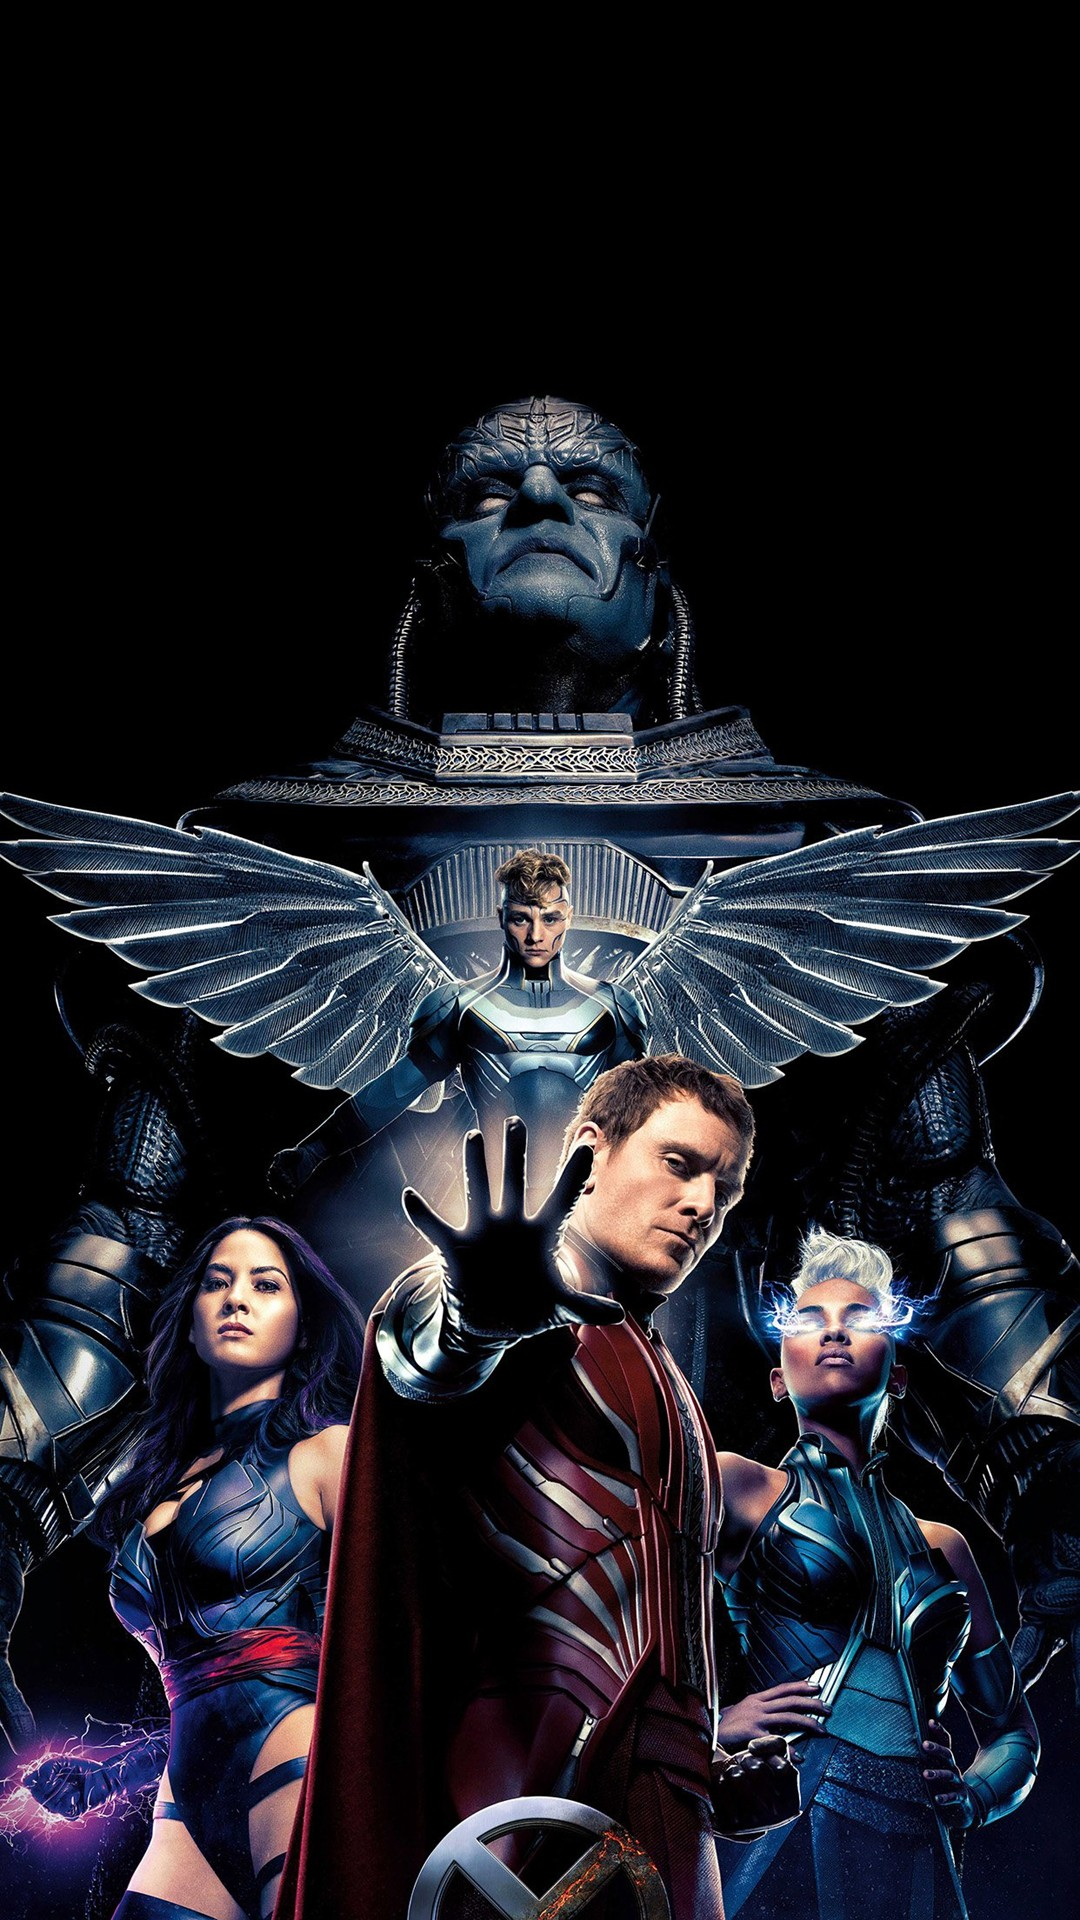 Xmen iphone wallpaper